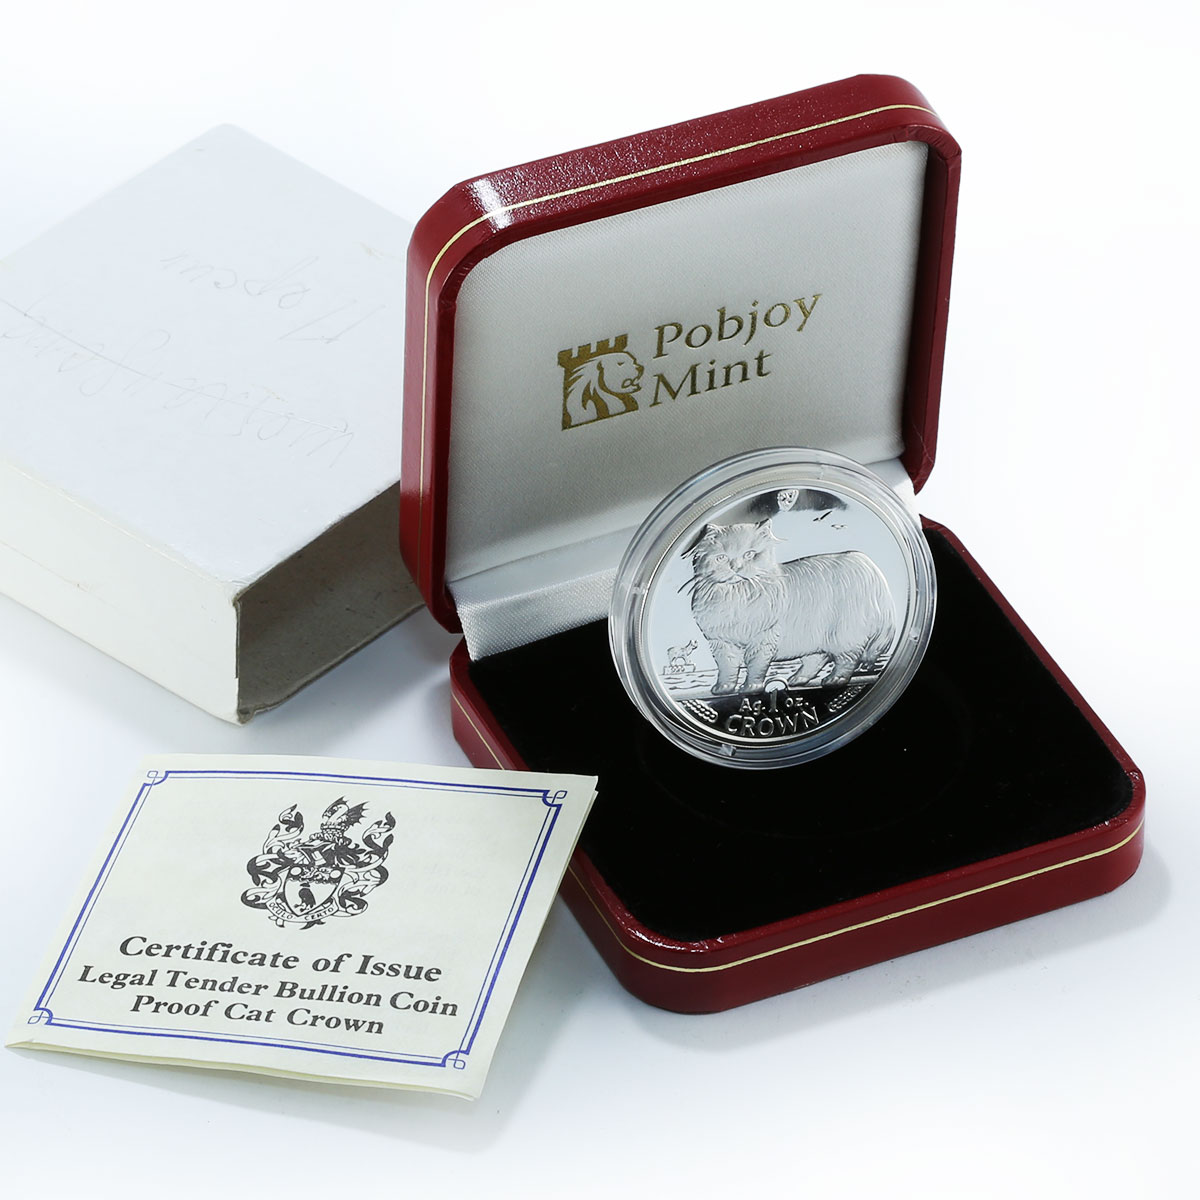 Isle of Man, 1 crown, Persian cat, silver, proof, coin 1989